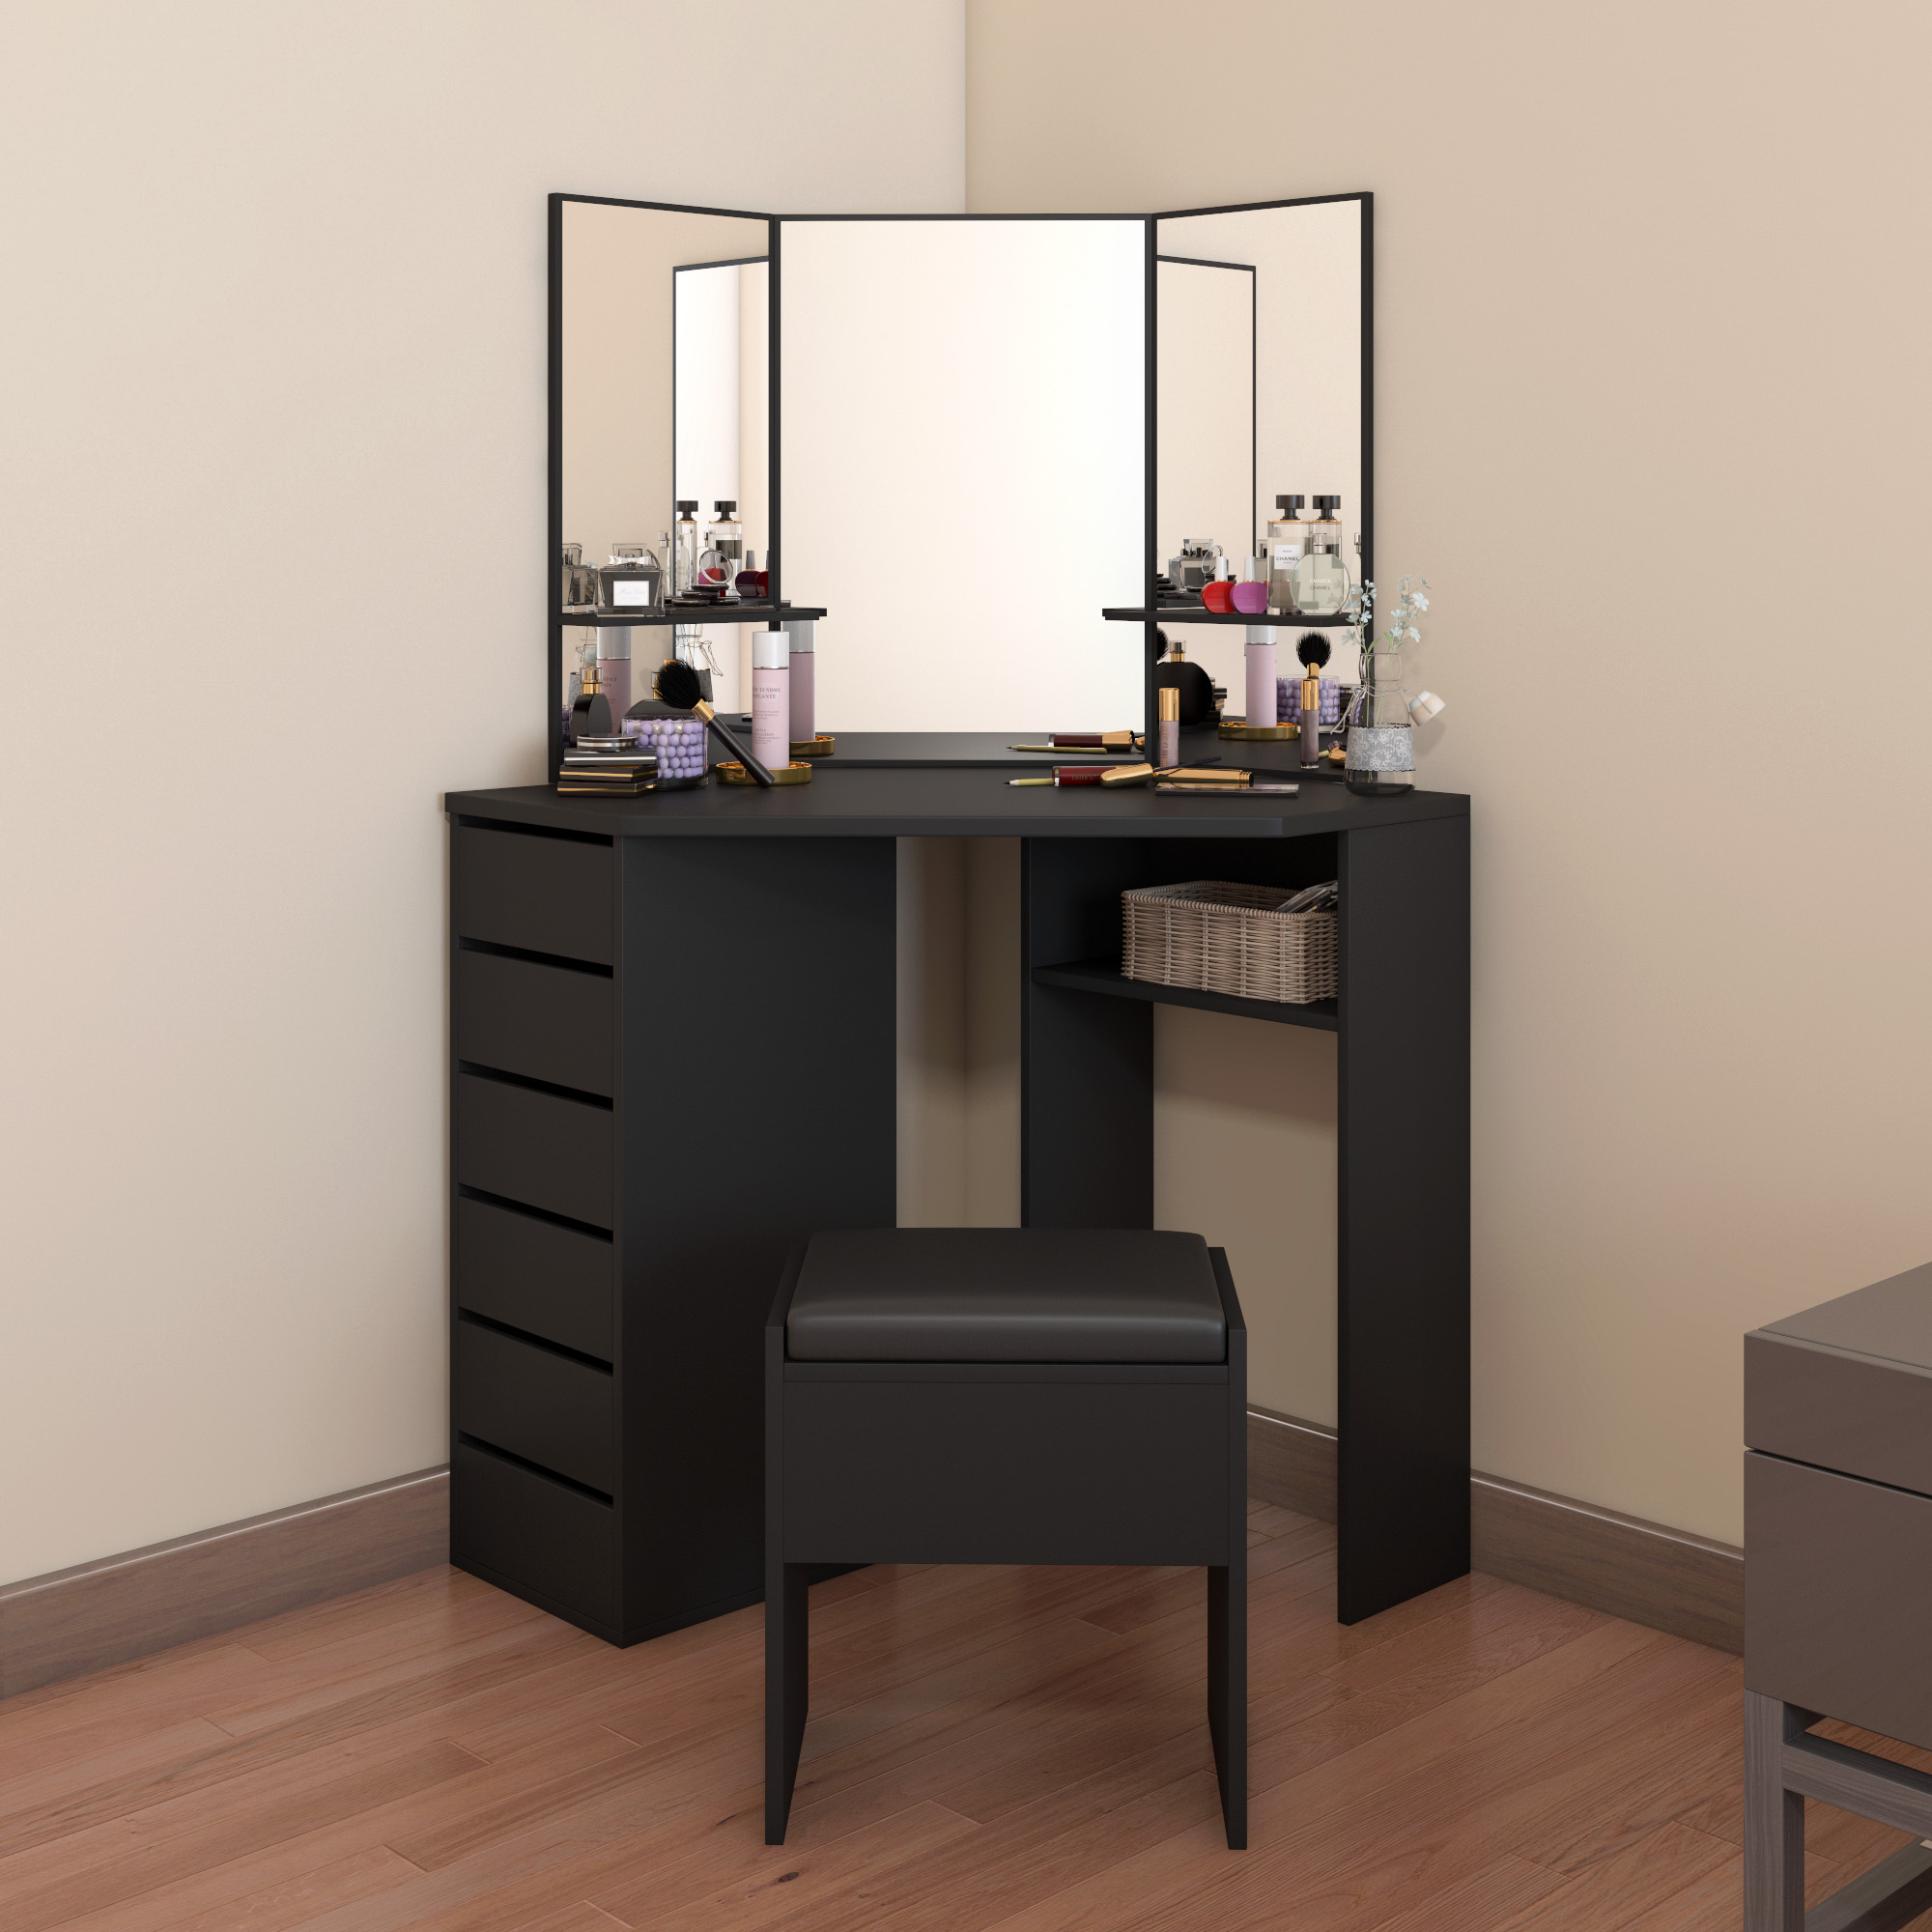 Pananan Modern Corner Dressing Table Makeup Curved Mirror With Stool Shape Home Working Wtudy Desk